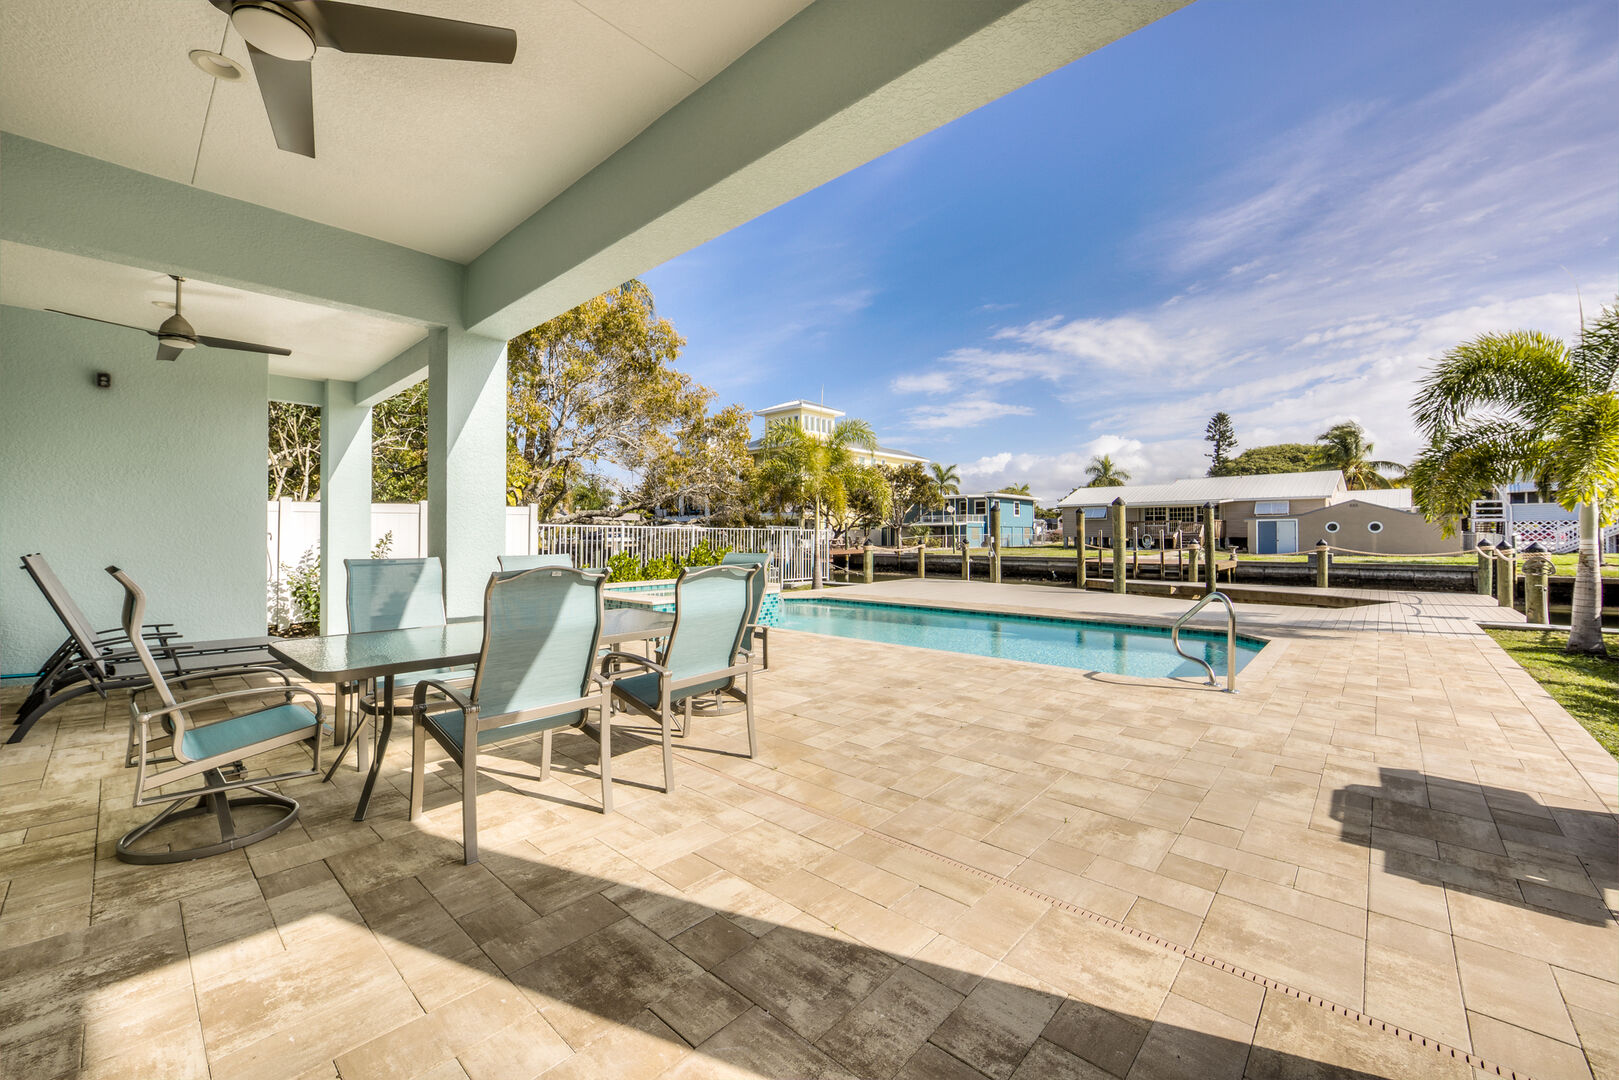 Outdoor Seating and Pool area at Tidewater